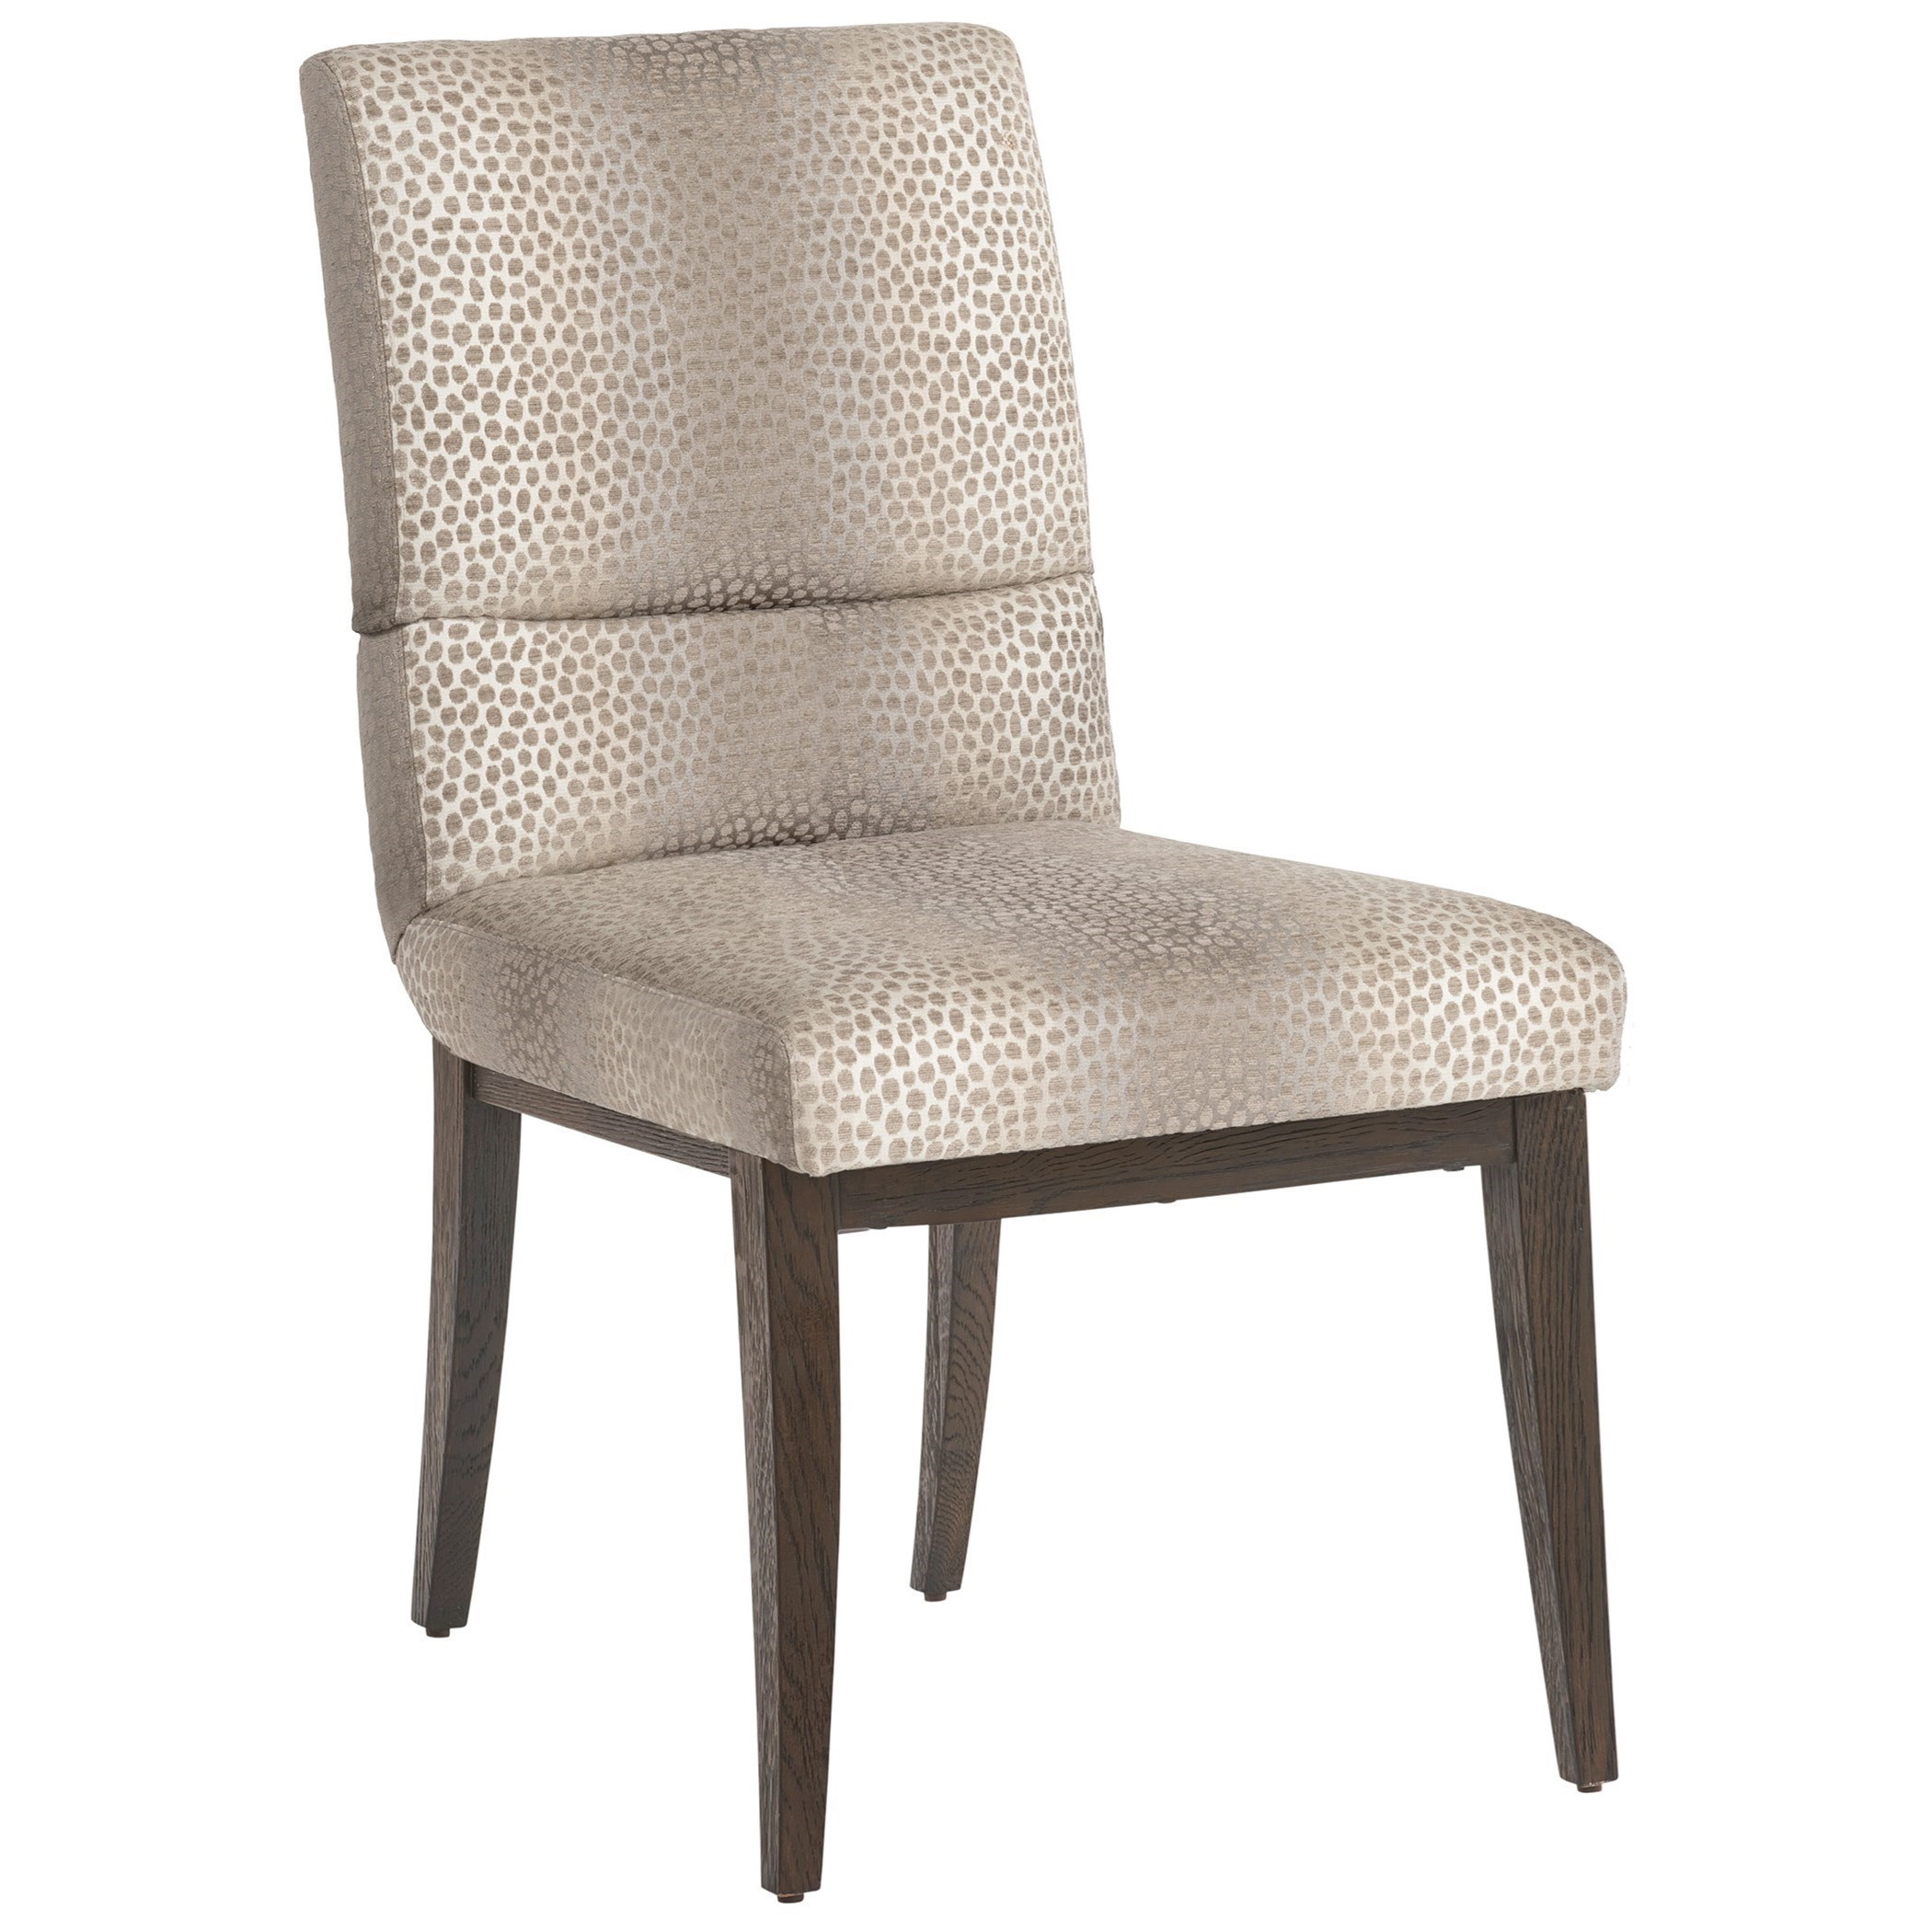 Glenwild Customizable Upholstered Side Chair with Performance Fabric